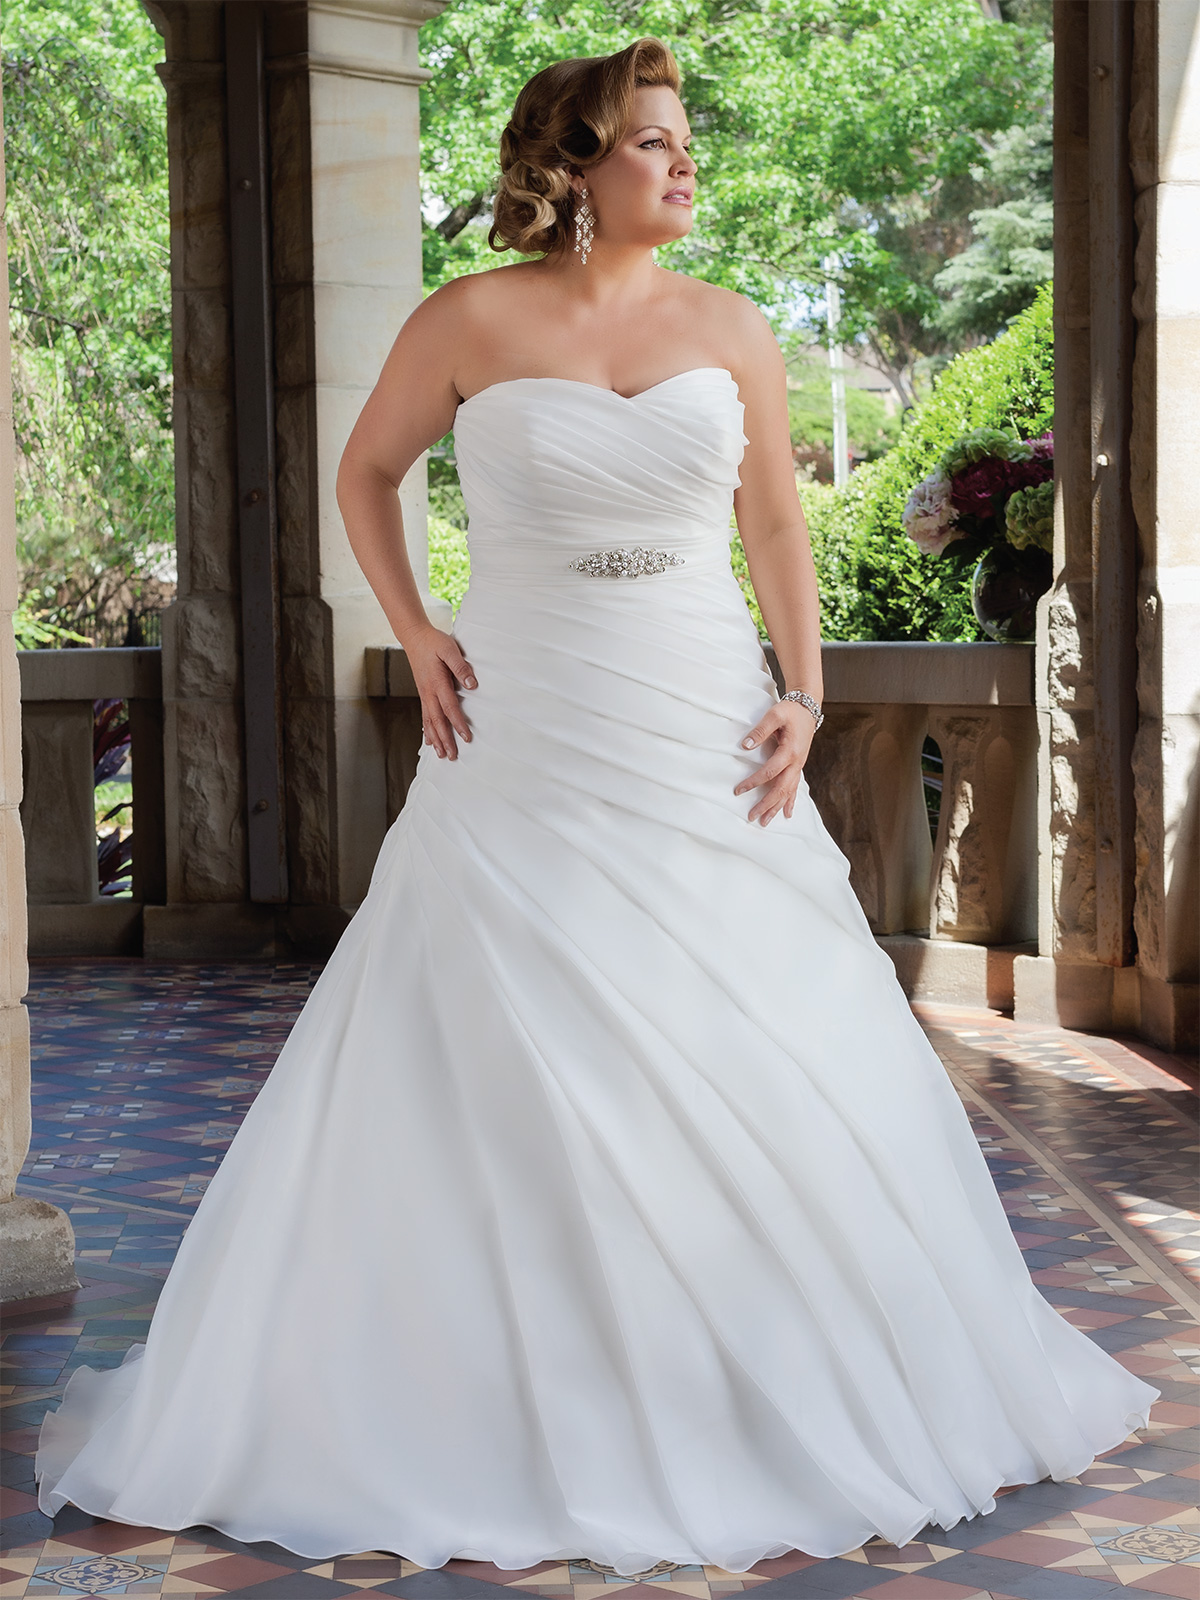 15 Plus Size Wedding Dresses To Make You Look Like Queen  MagMent